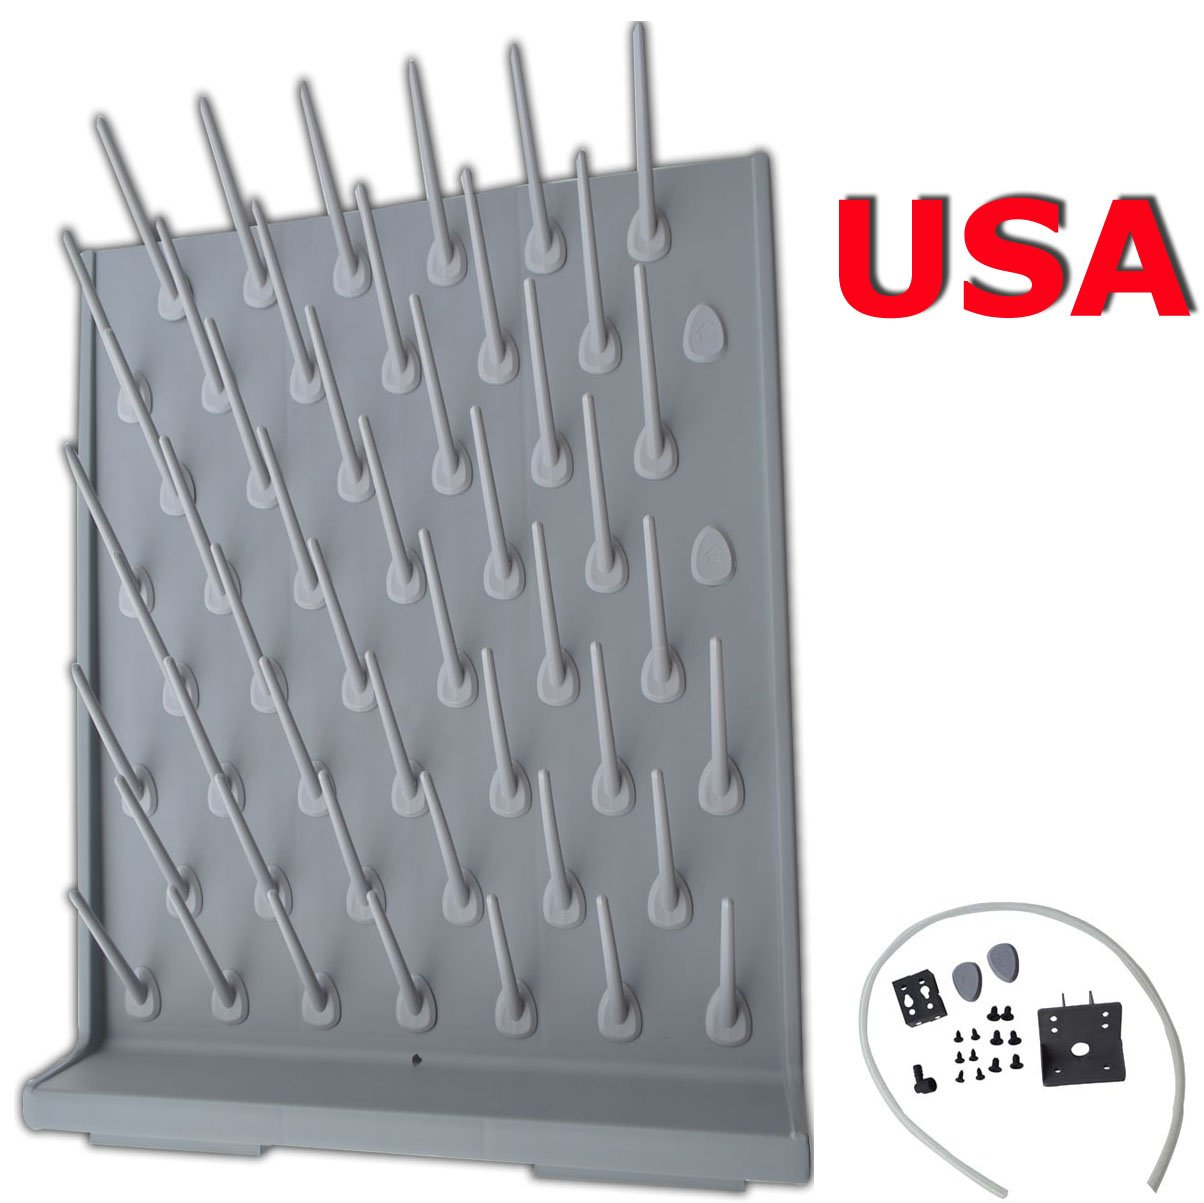 Brand New Lab Supply Wall Desk Drying Rack 52 Pegs Education&lab Science Use